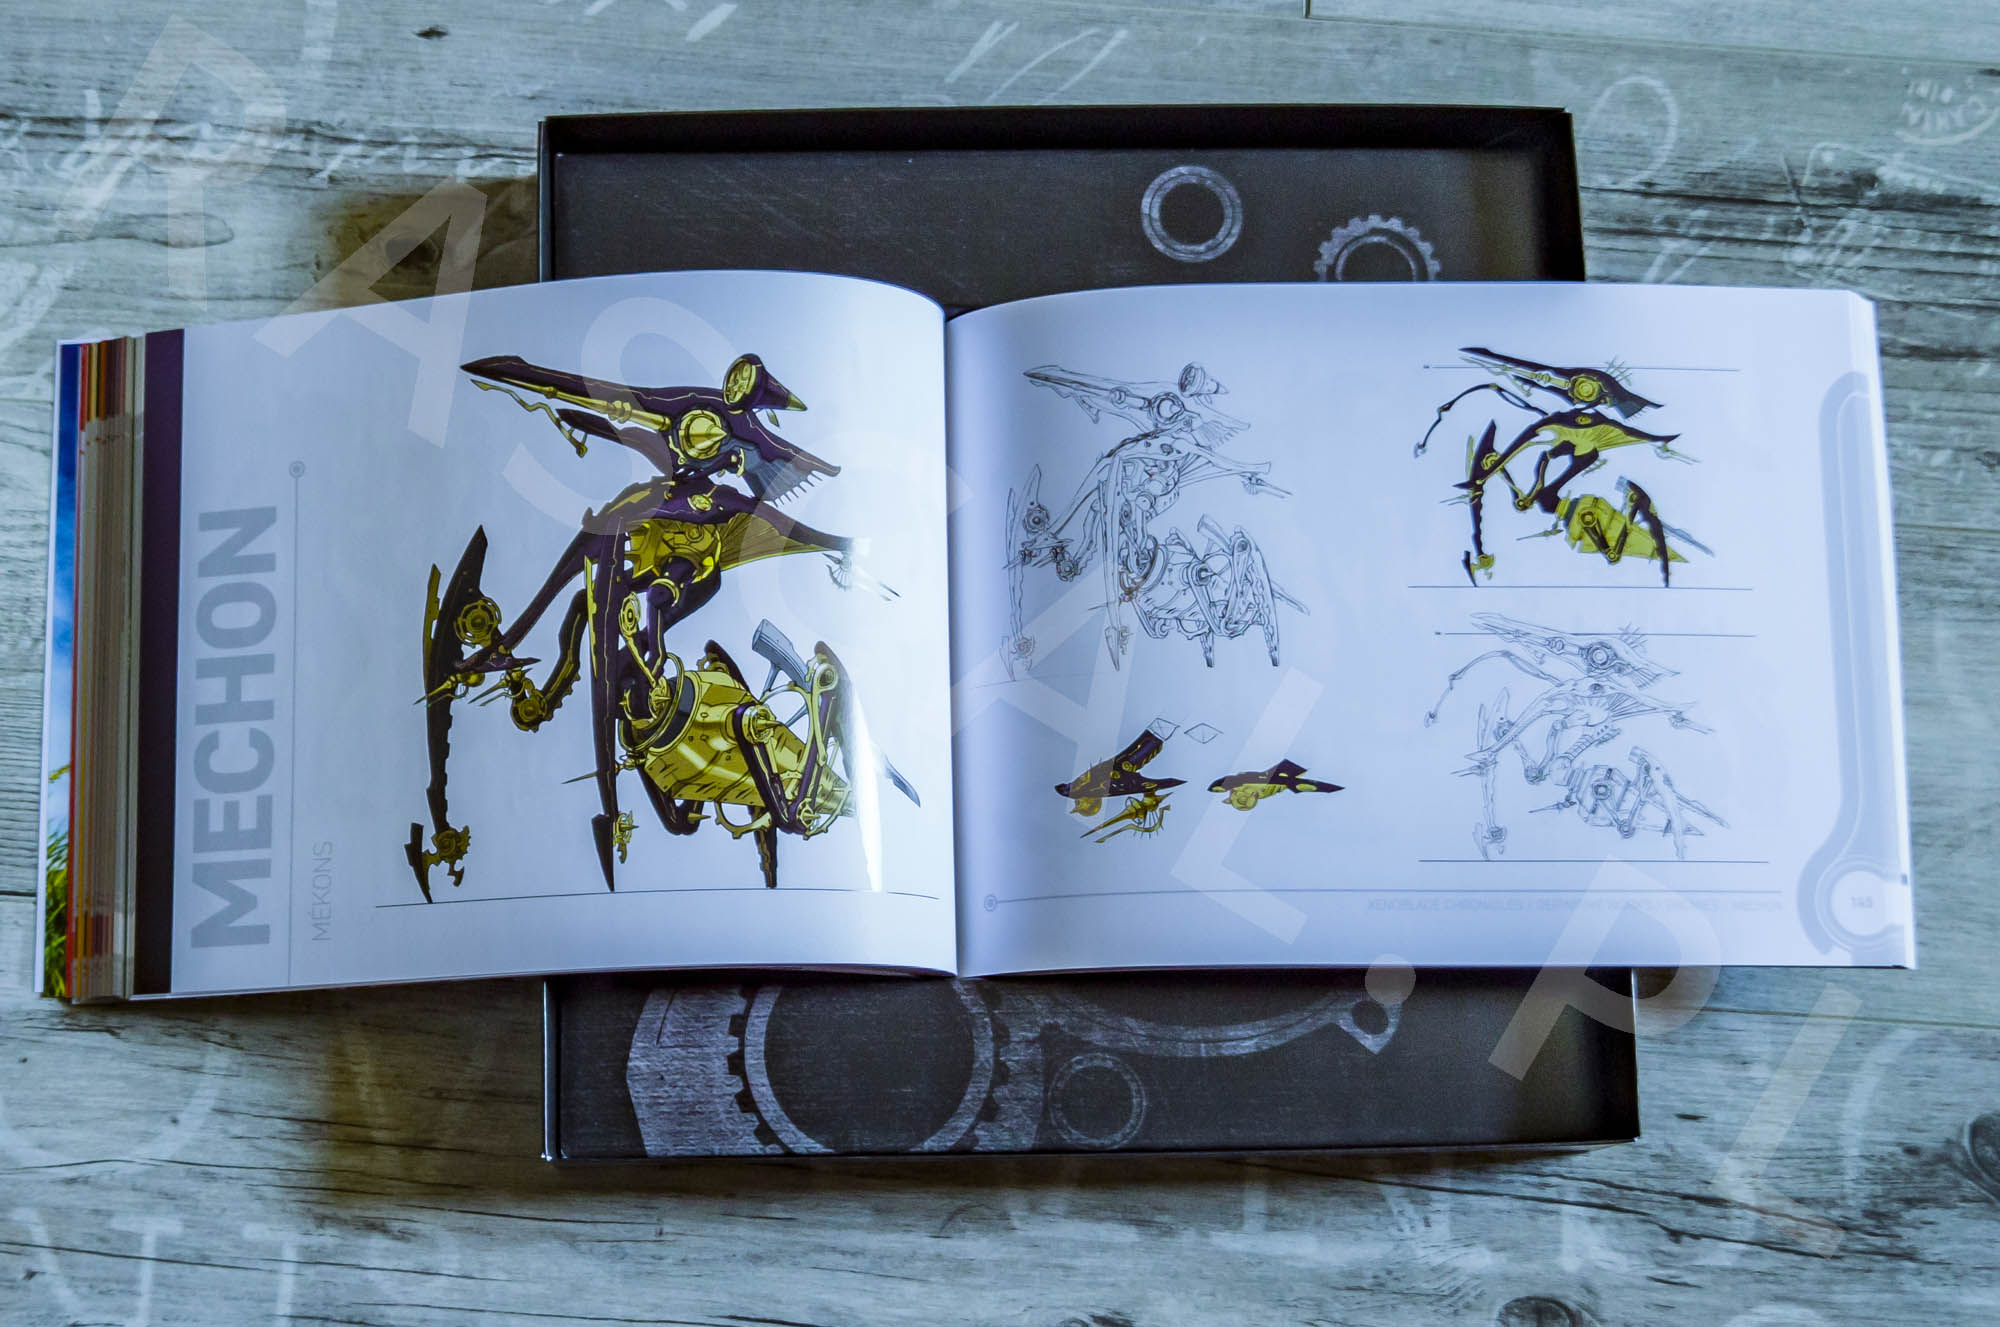 Xenoblade Chronicles Definitive Edition Collectors Set - Artbook - 17 - Wrogowie